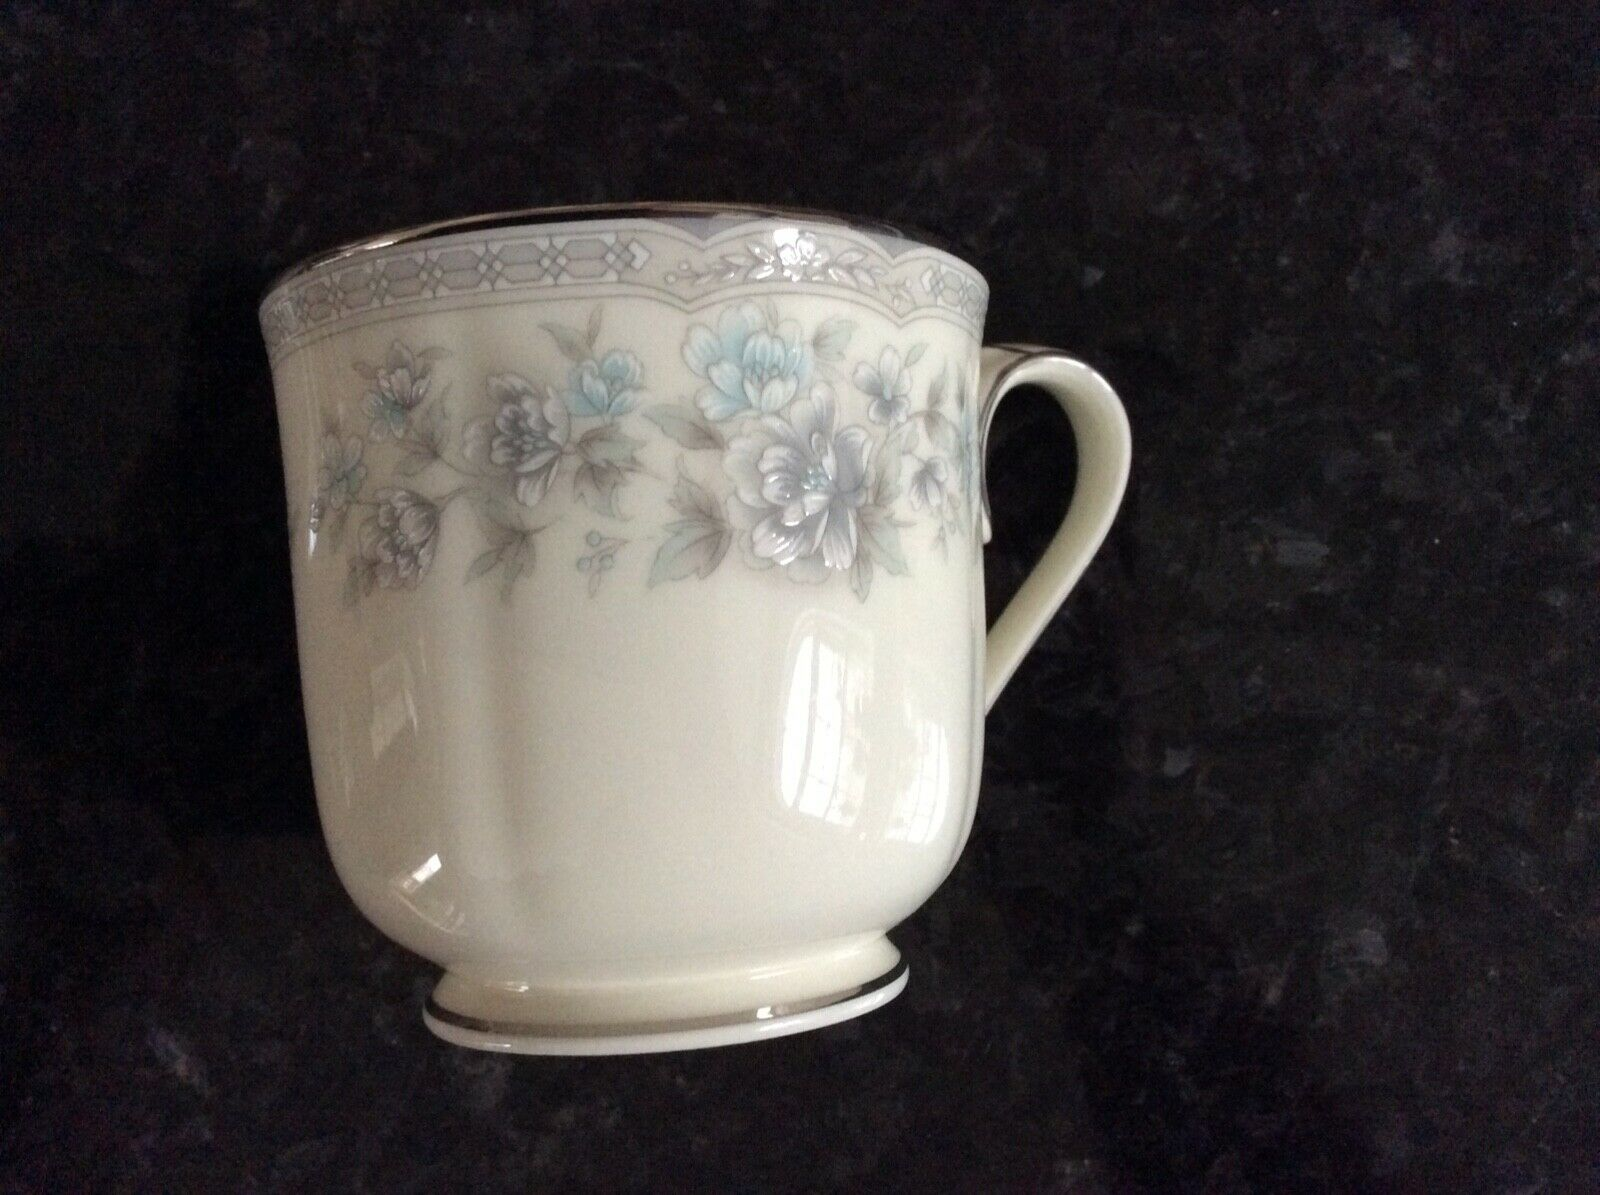 Noritake Buena Vista Coffee Cup With Saucer Bone China 9728 Mint Condition  - $5.00